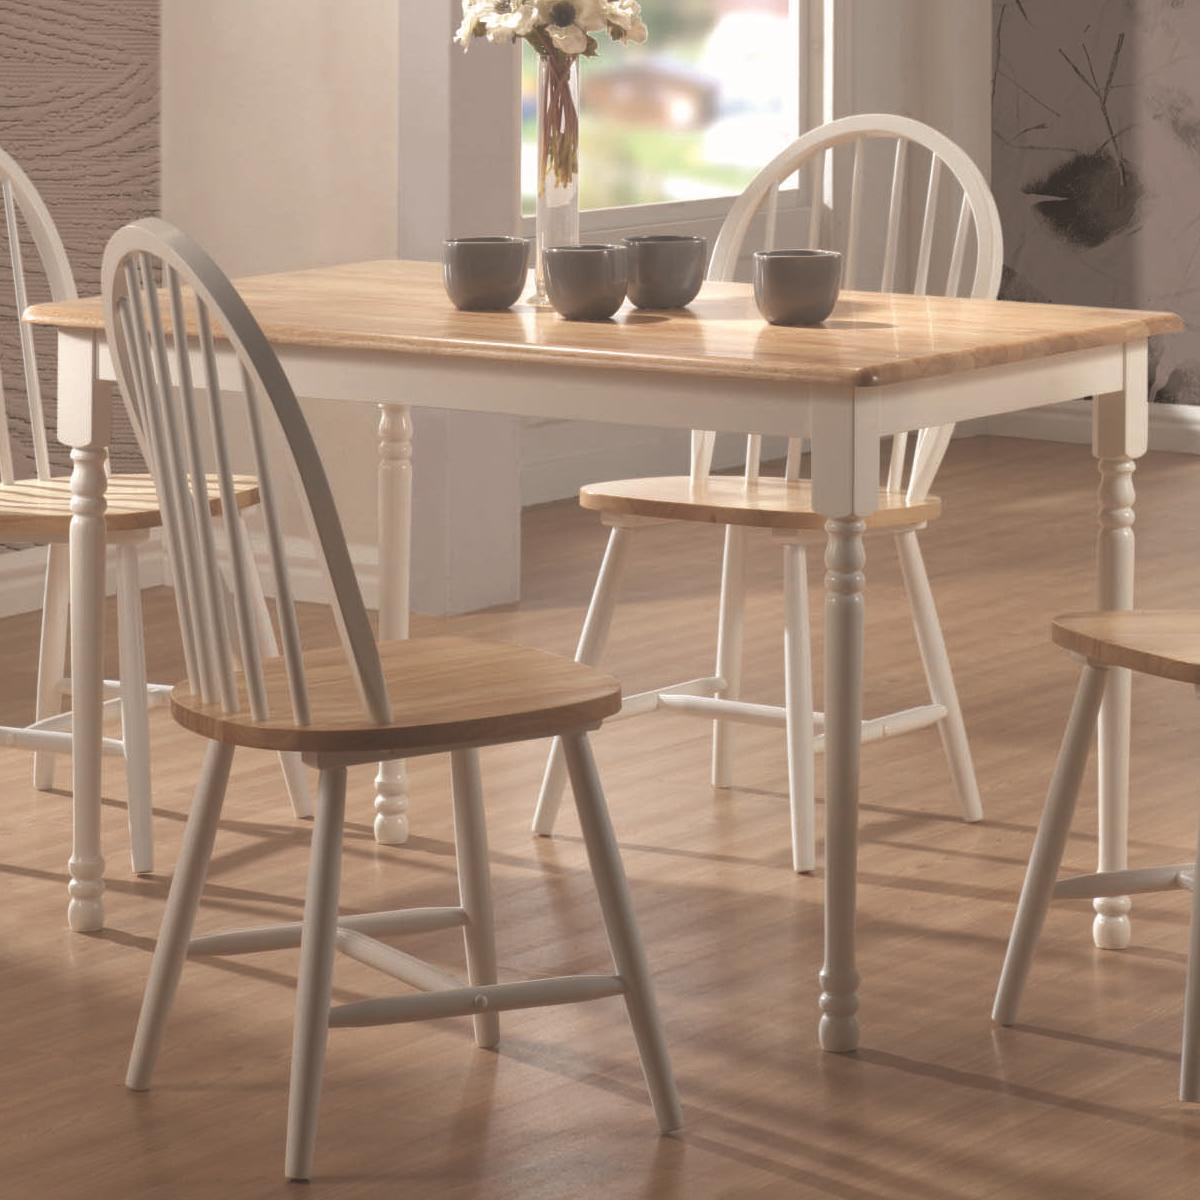 Coaster Furniture Dinettes Natural White Wood Dining Table